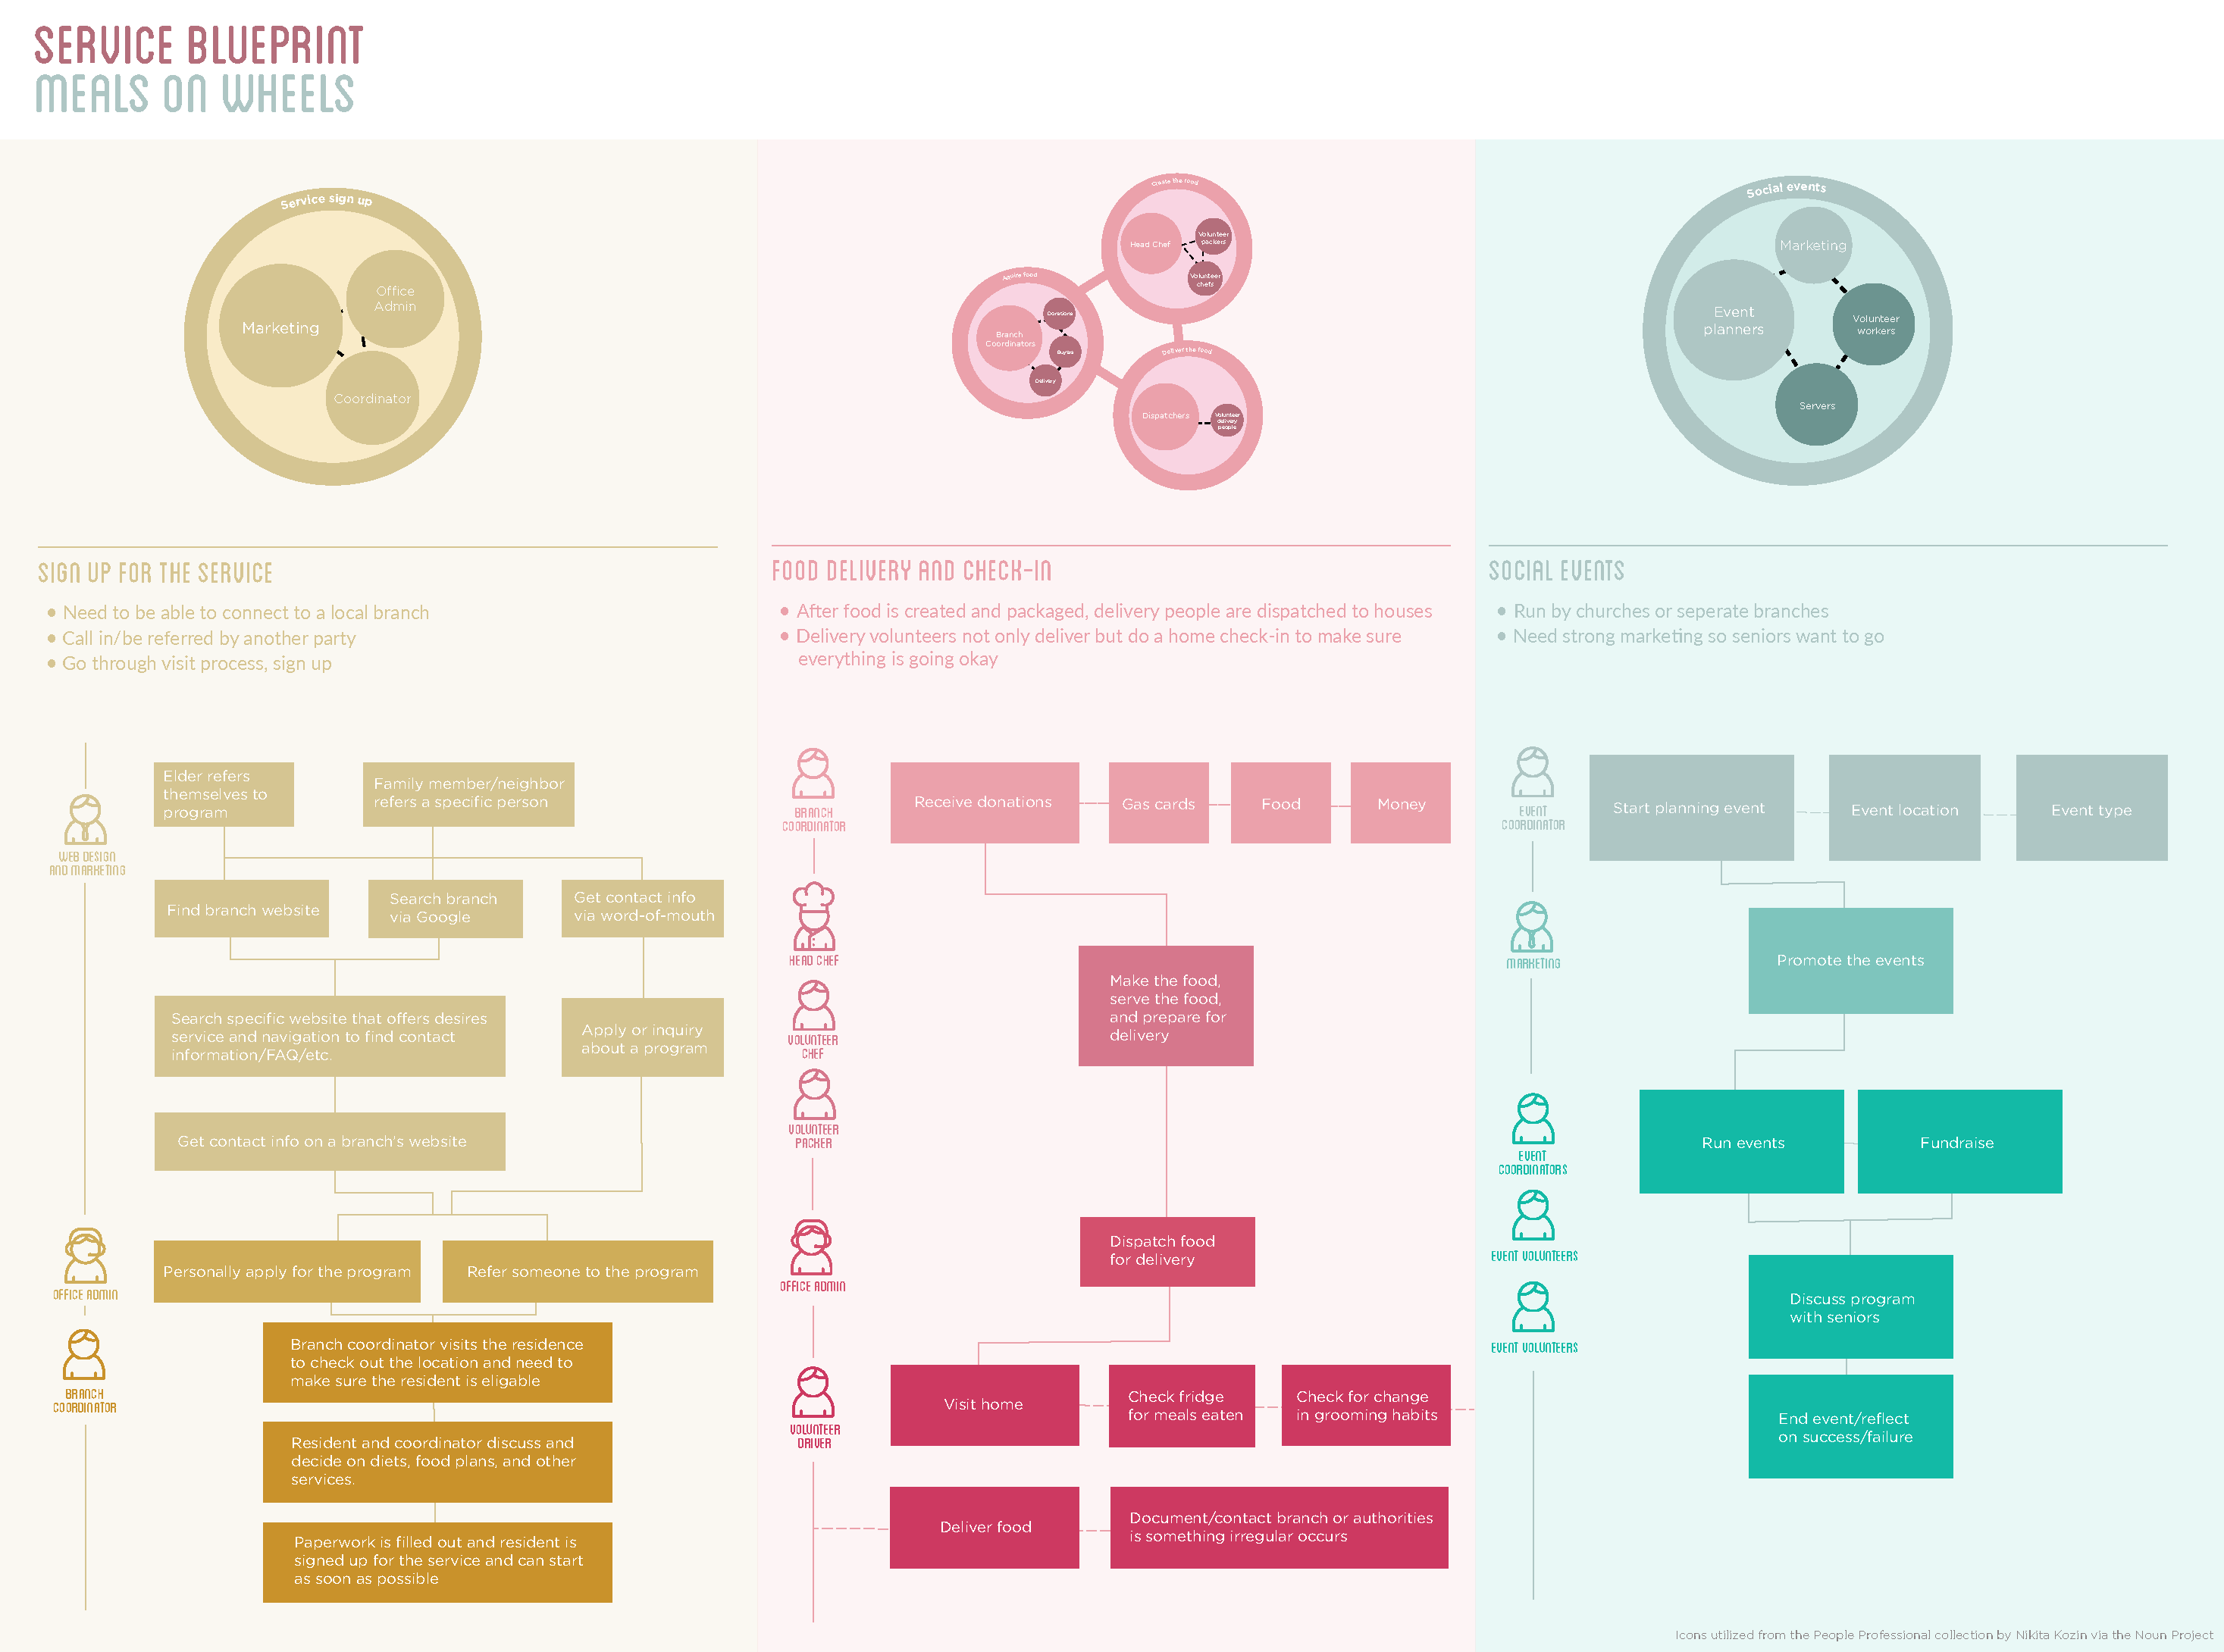 Meals on wheels service design emily dallaire ux architect serviceblueprint al444 both 01 malvernweather Choice Image